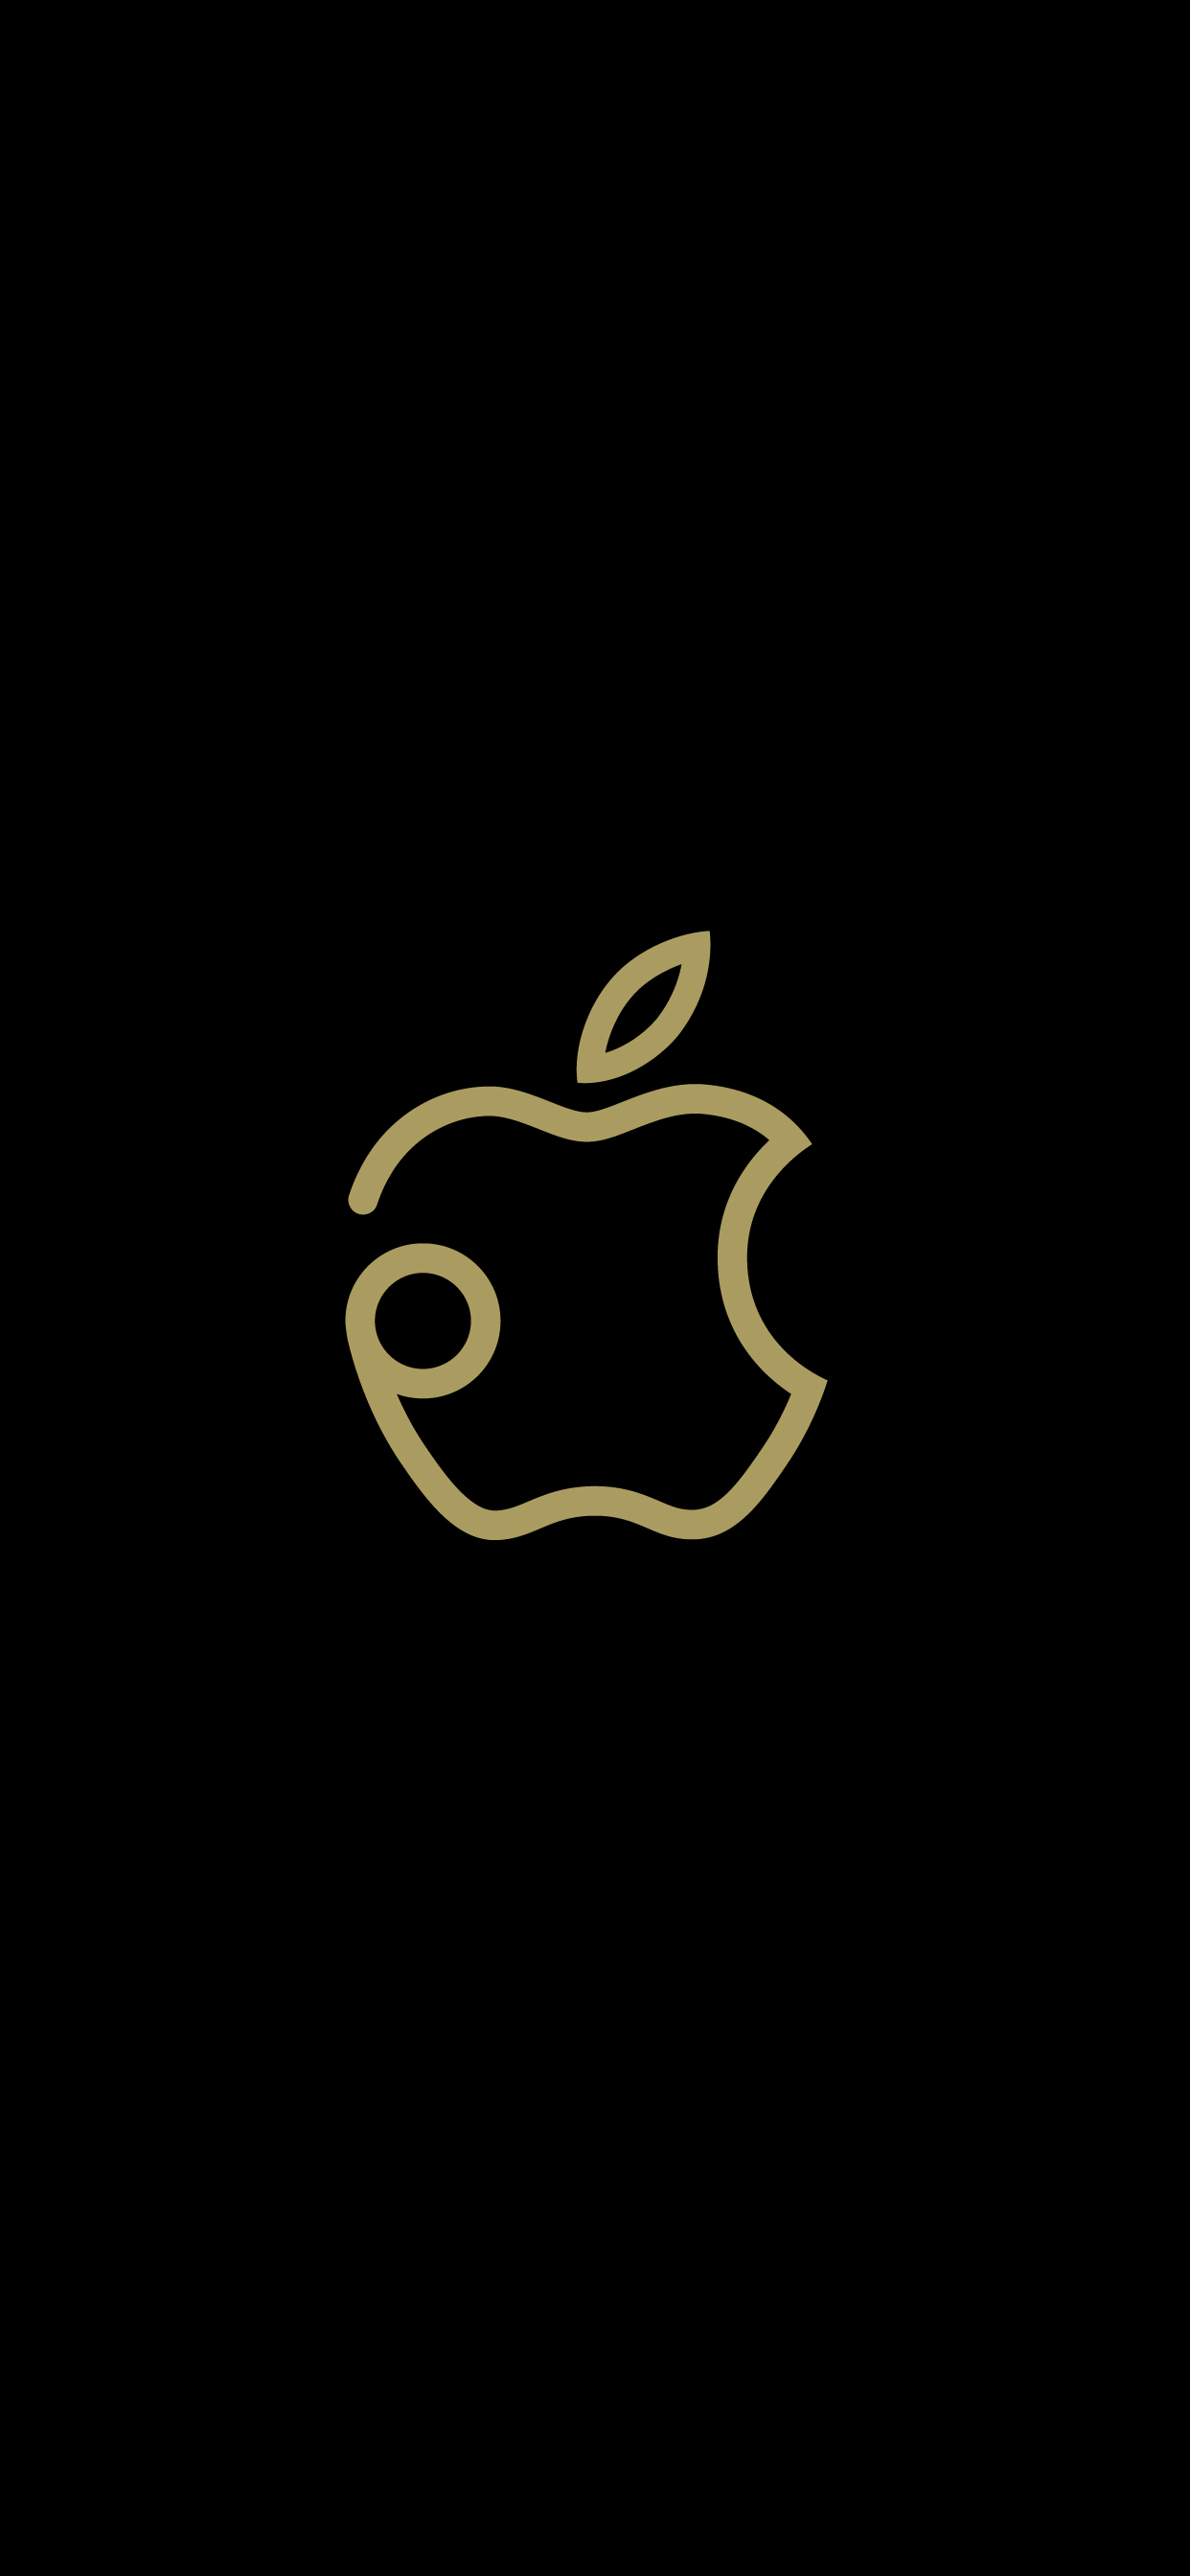 Apple Iconsiam Iphone Wallpaper Img 1